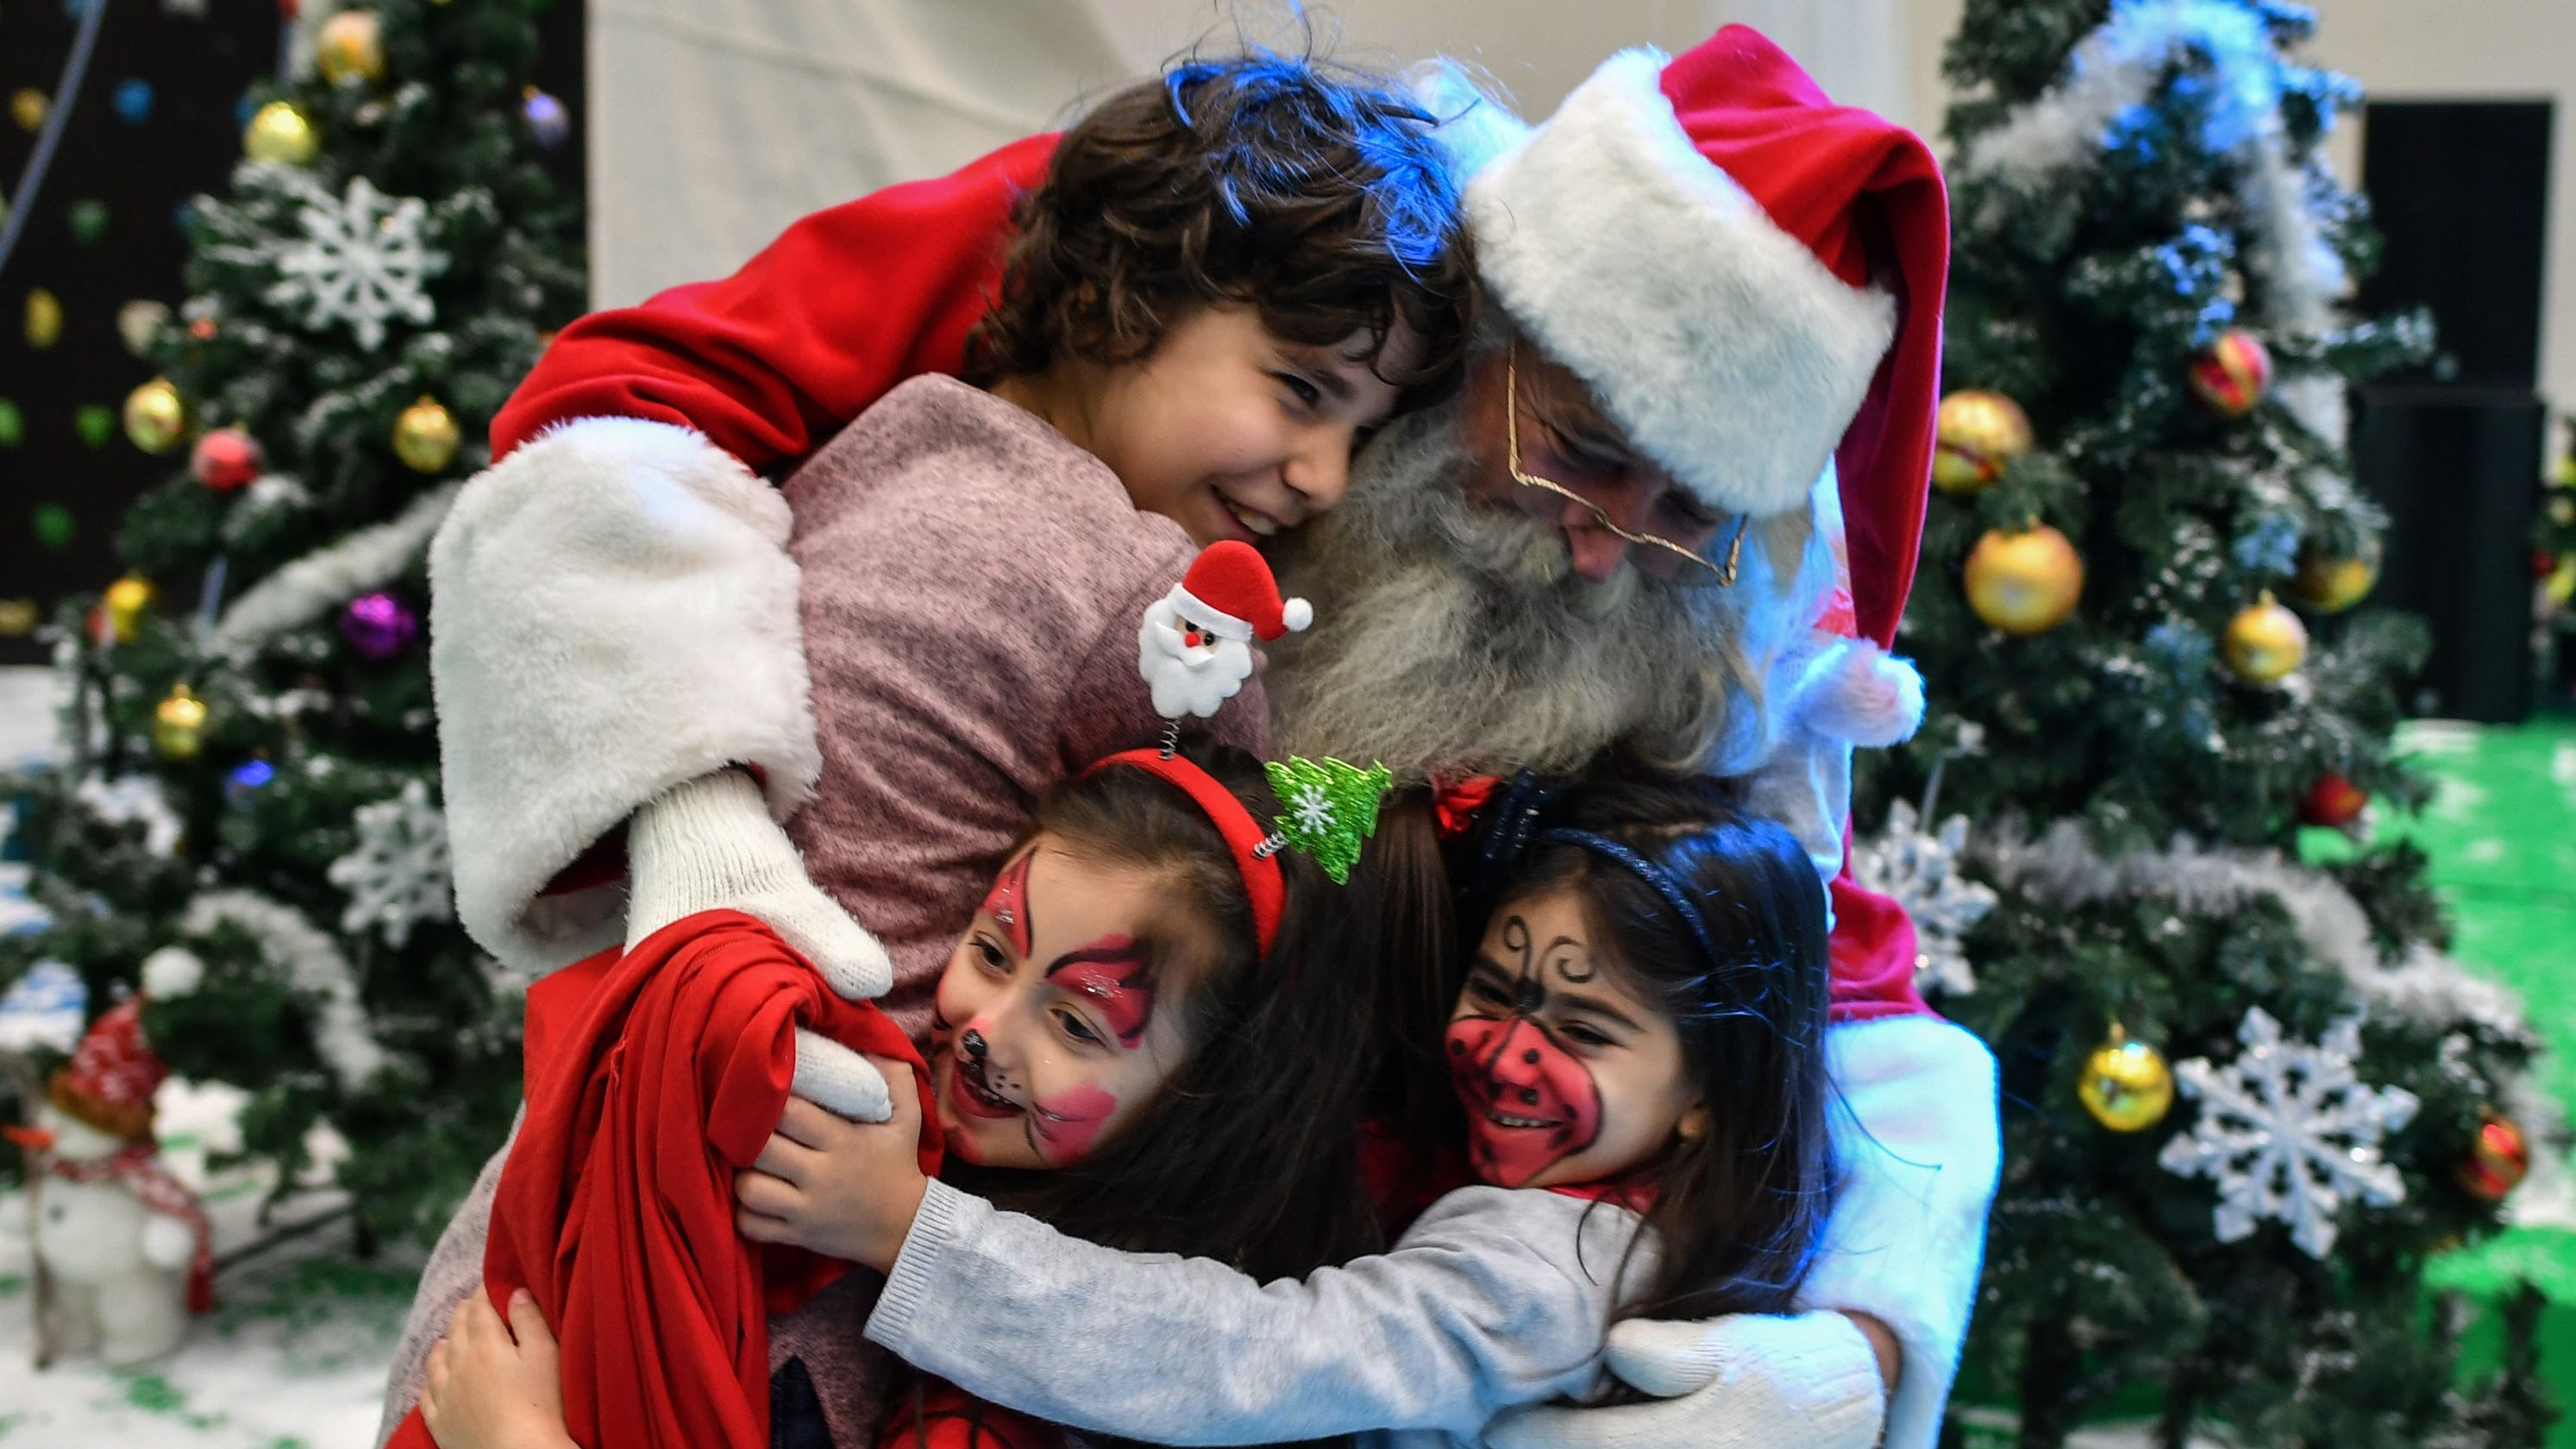 mom writes santa claus letter for parents working on christmas